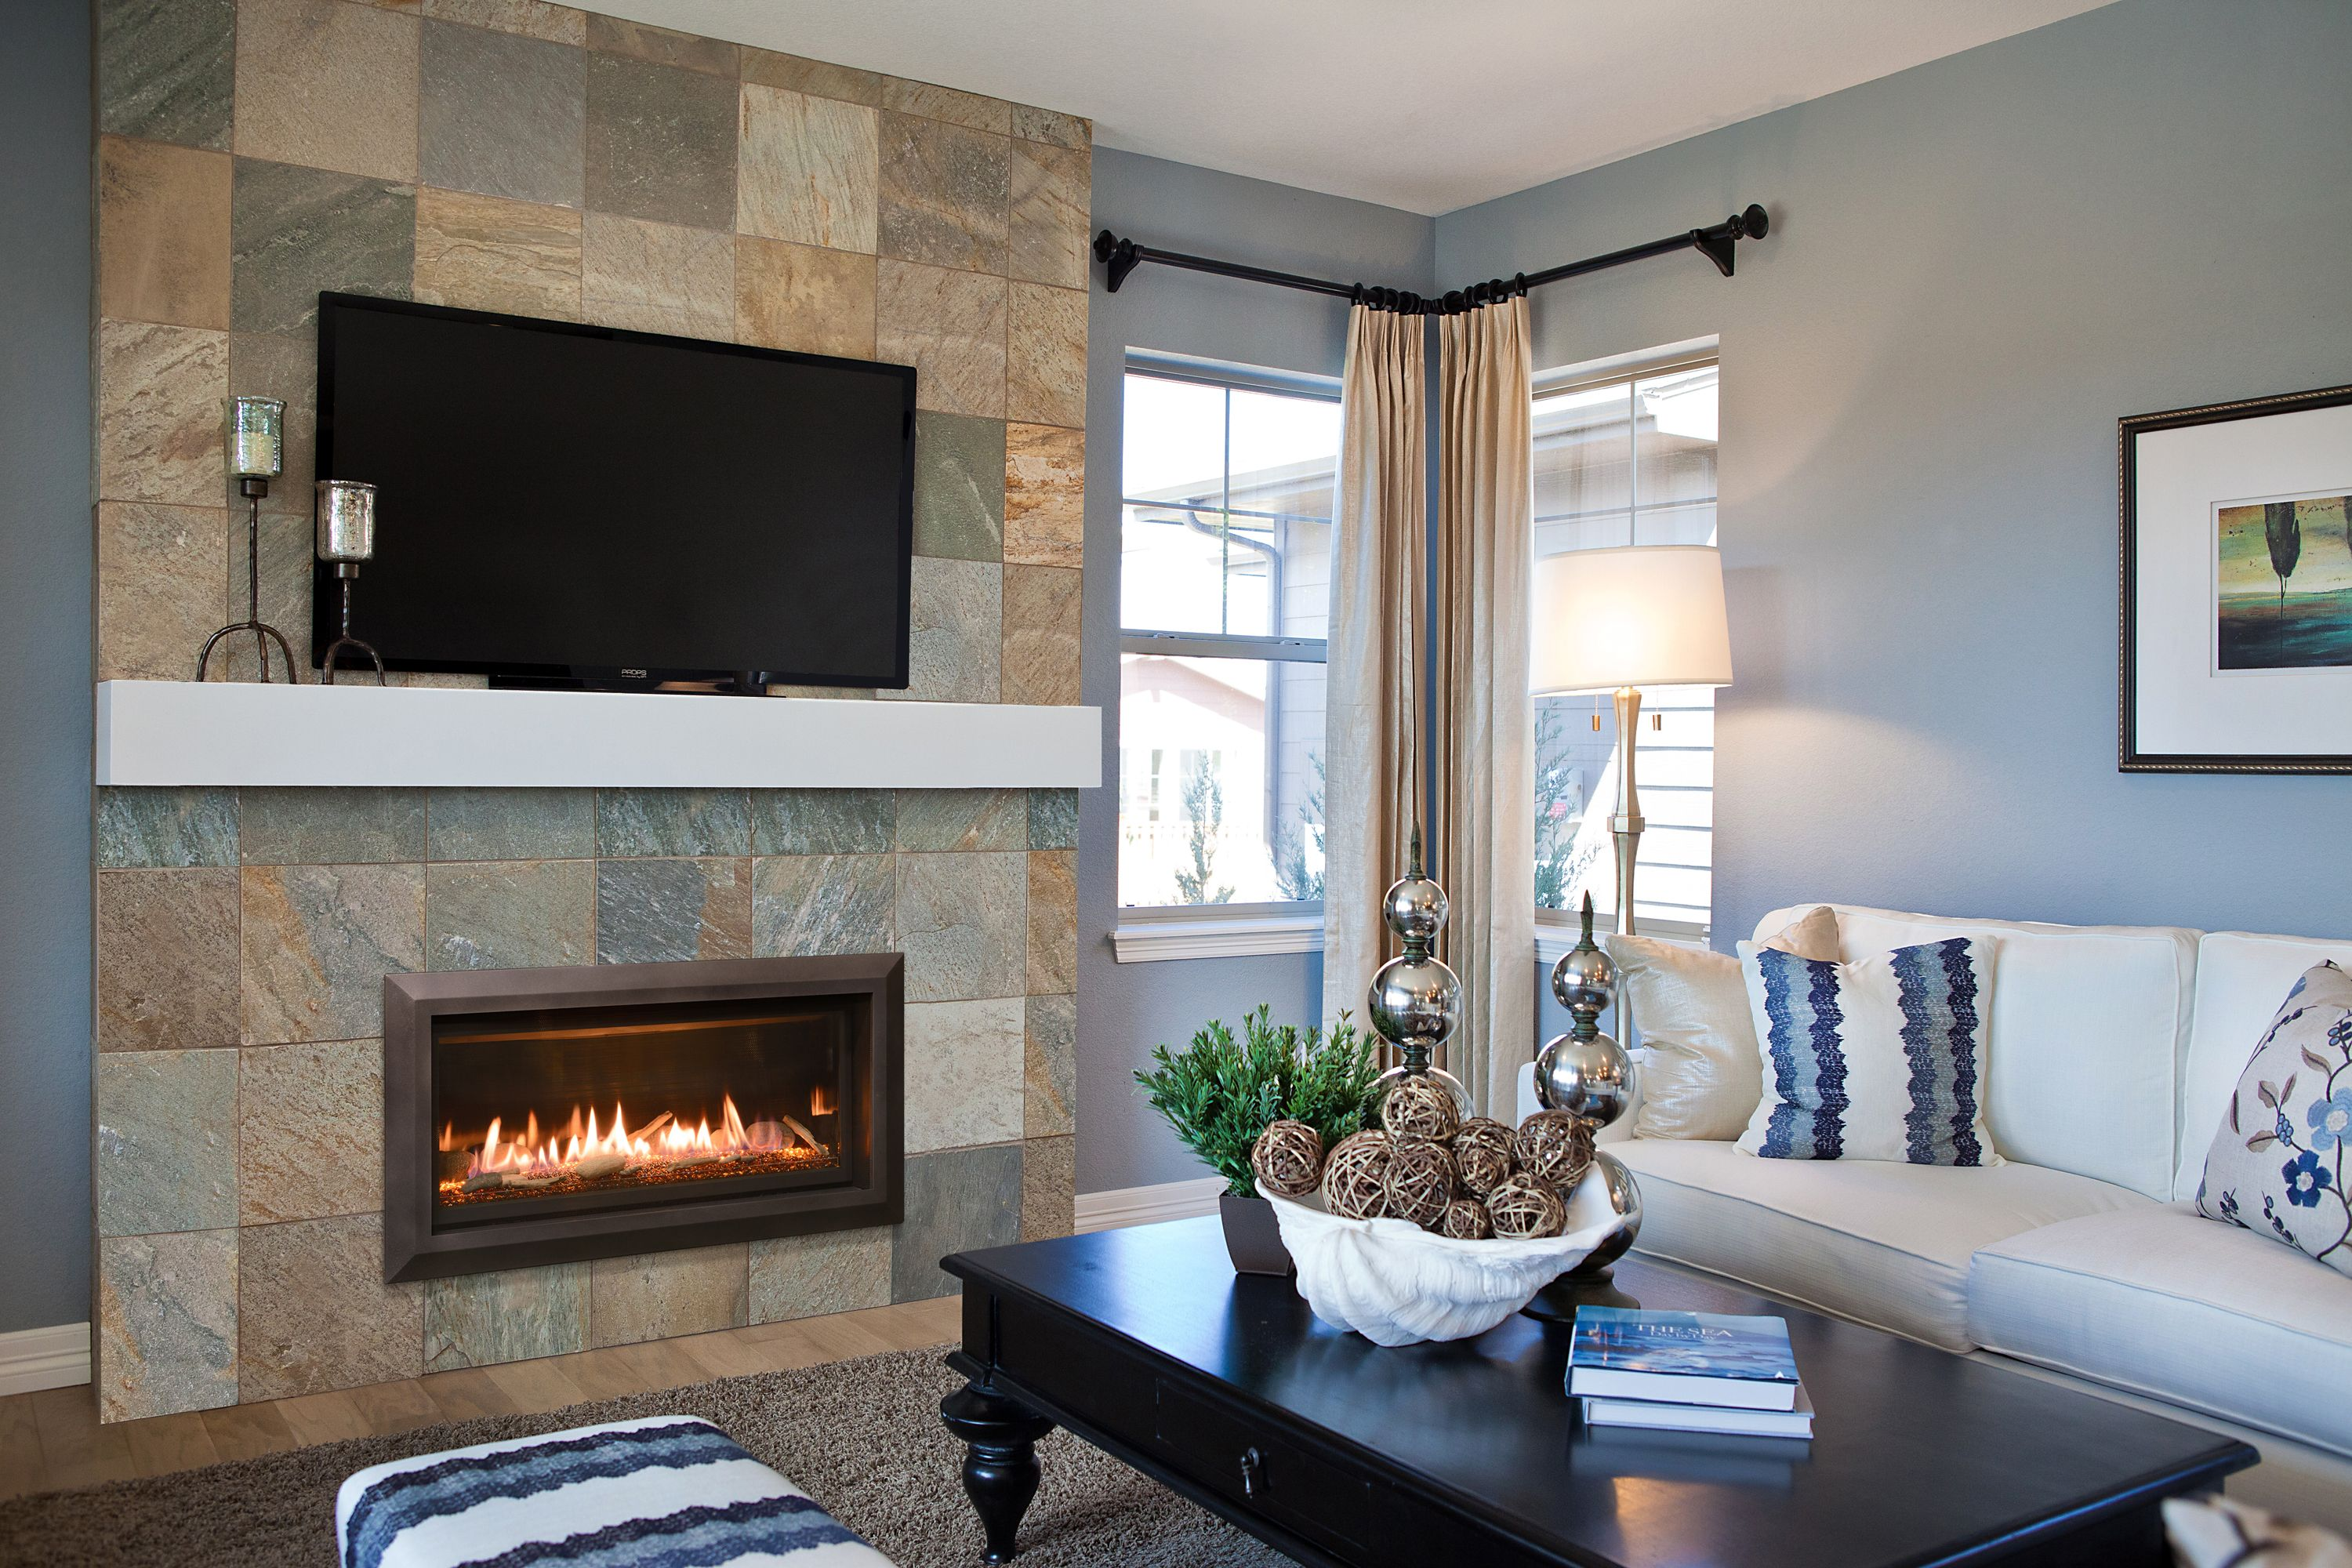 This Is Our Slayton 36 Direct Vent Linear Gas Fireplace